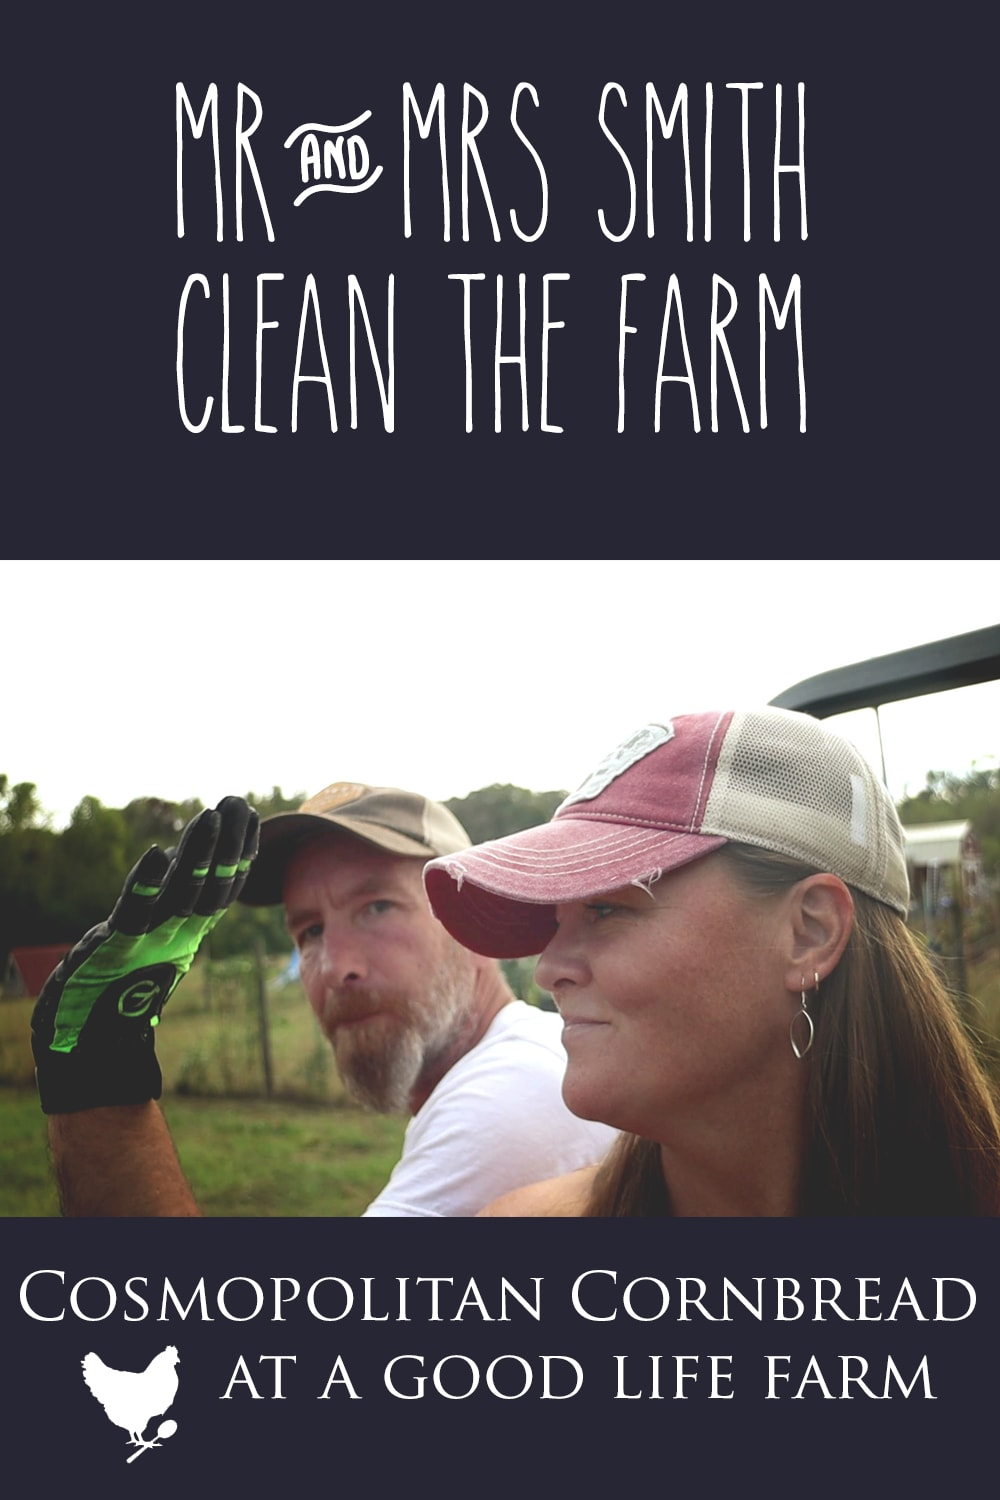 Mr. & Mrs. Smith Clean the Farm - time for us to do some maintenance and clean-up here on the farm.